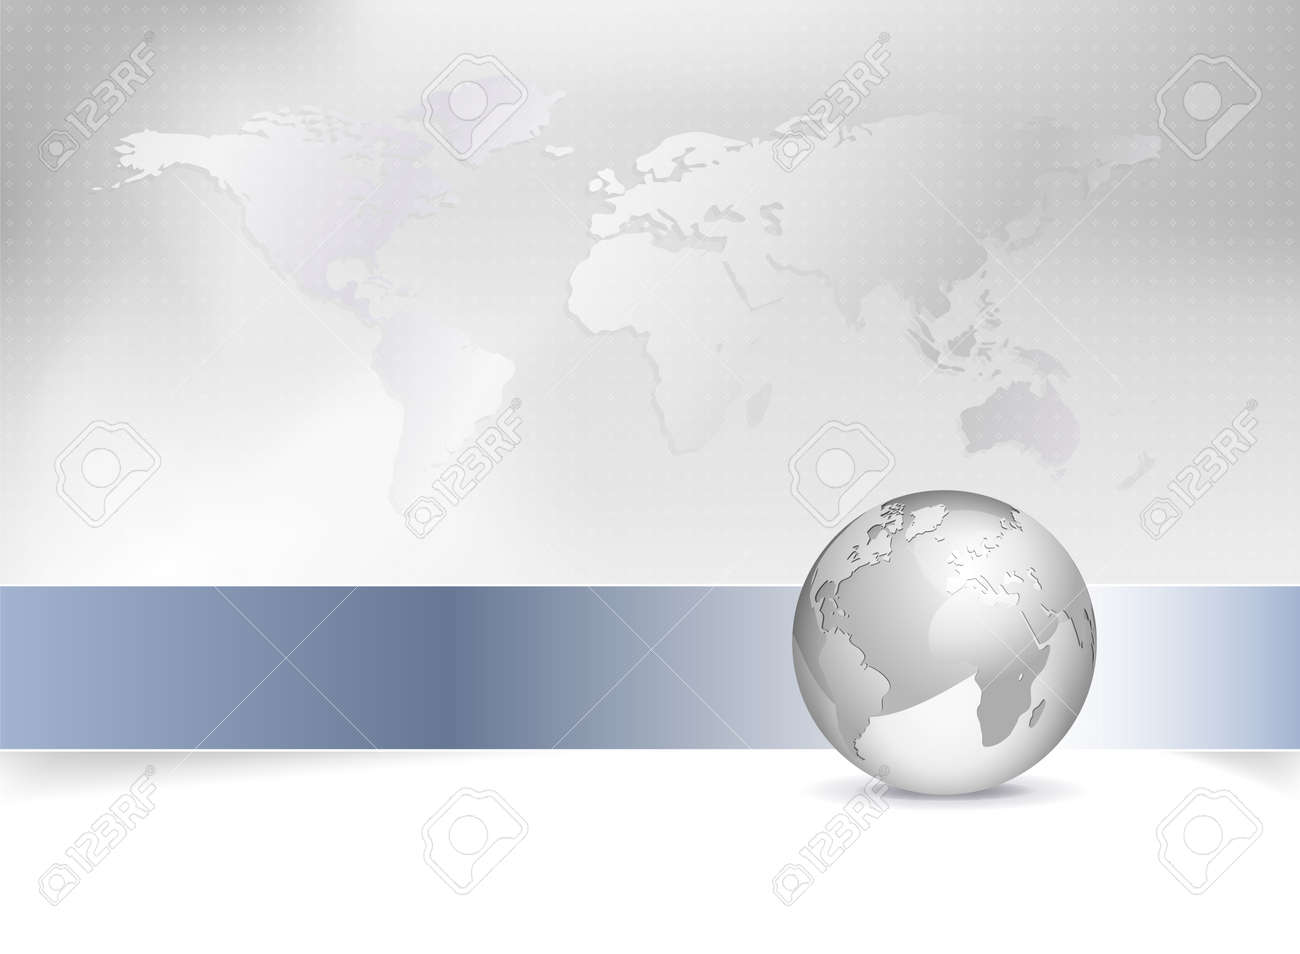 Business Map   World Map  Globe   Abstract Grey Background Design     Business map   world map  globe   abstract grey background design with blue  banner Stock